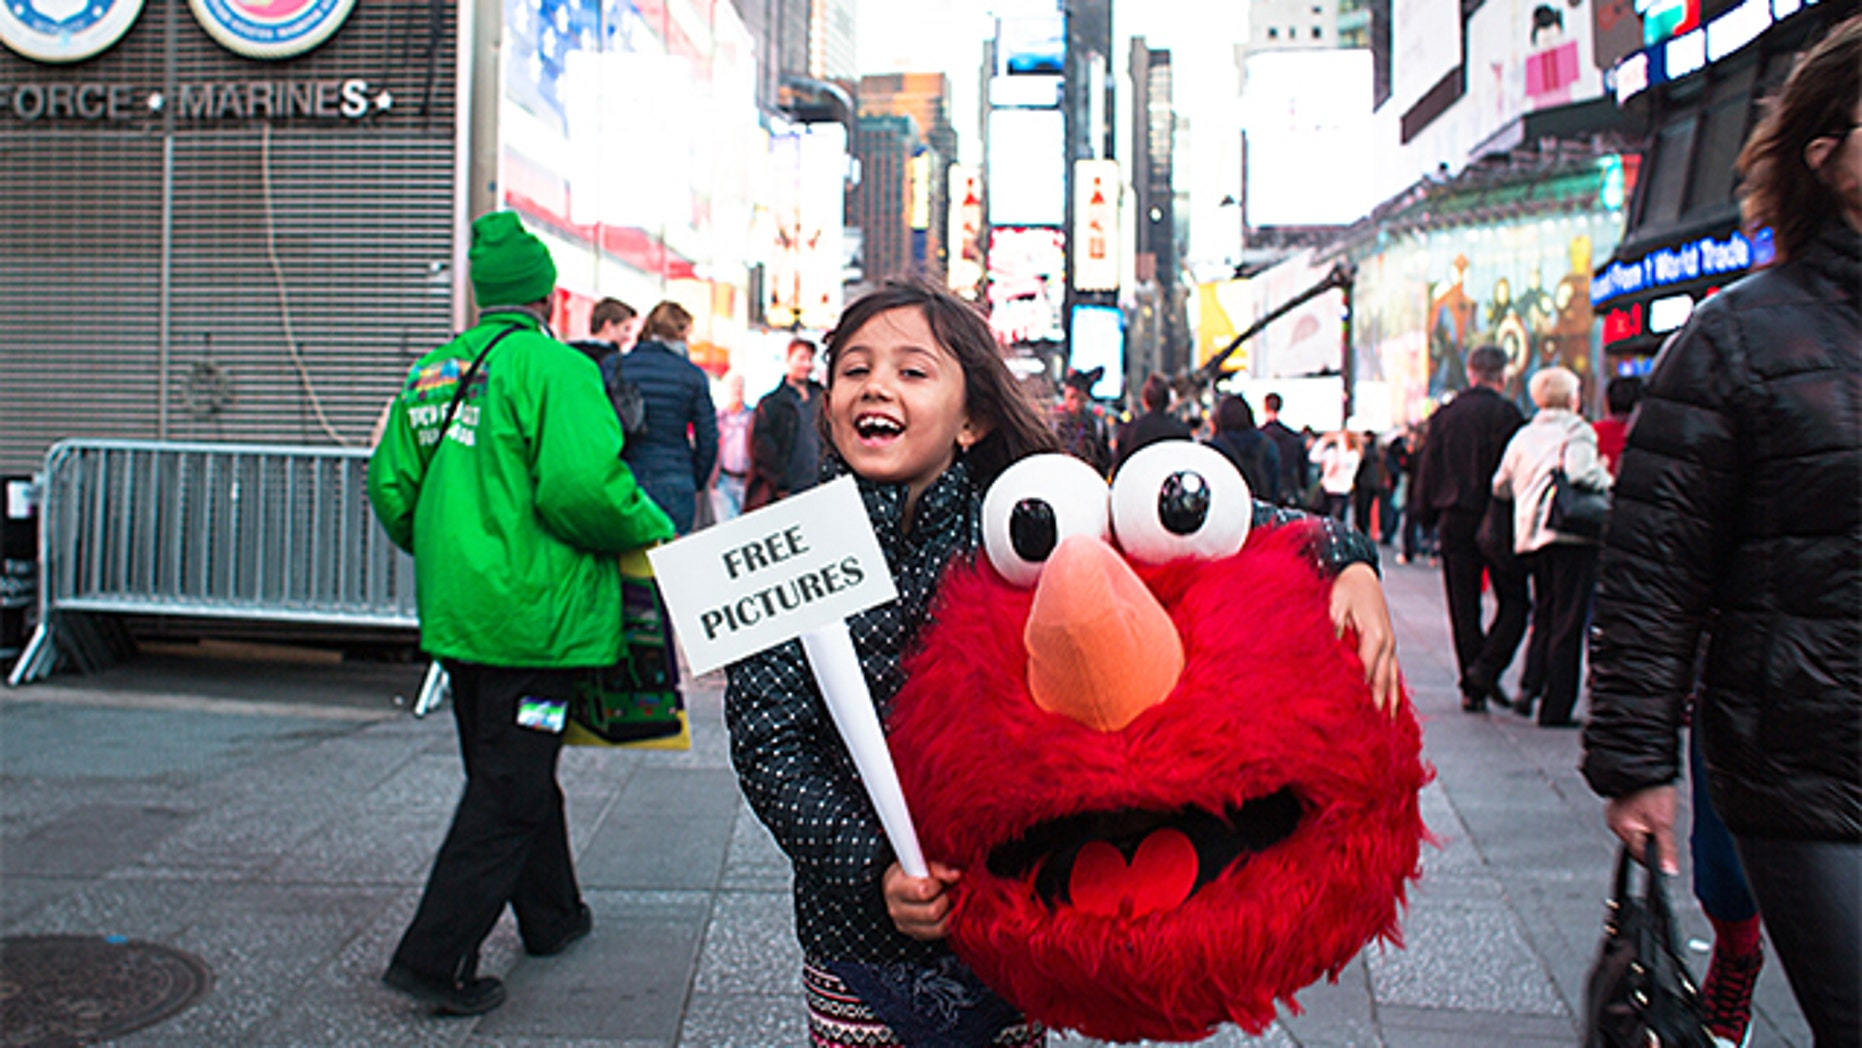 determined 6 year old girl declares war on costumed characters in